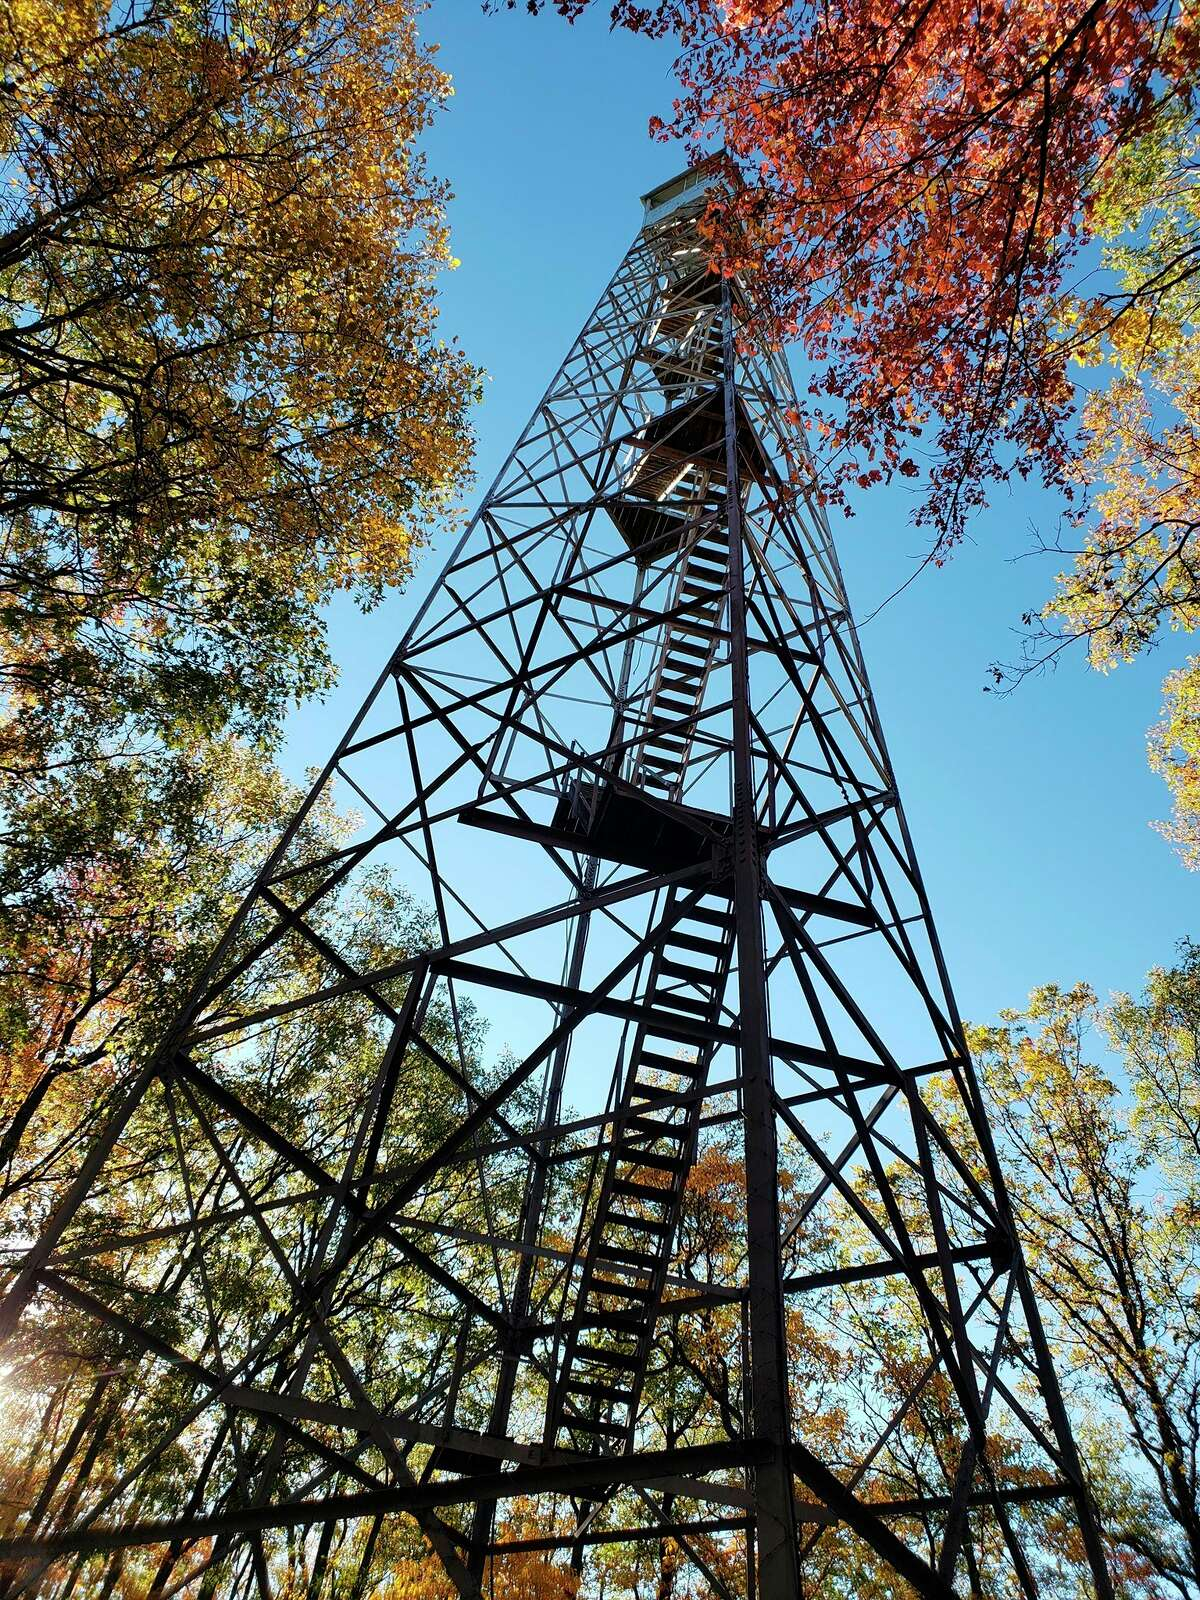 The Udell Lookout Tower is one of more than 20 historic sites which will be added to the Manistee Historic Sites Tours thanks in part to a$72,500 grant from the United States Department of Agriculture Rural Development. (File photo)